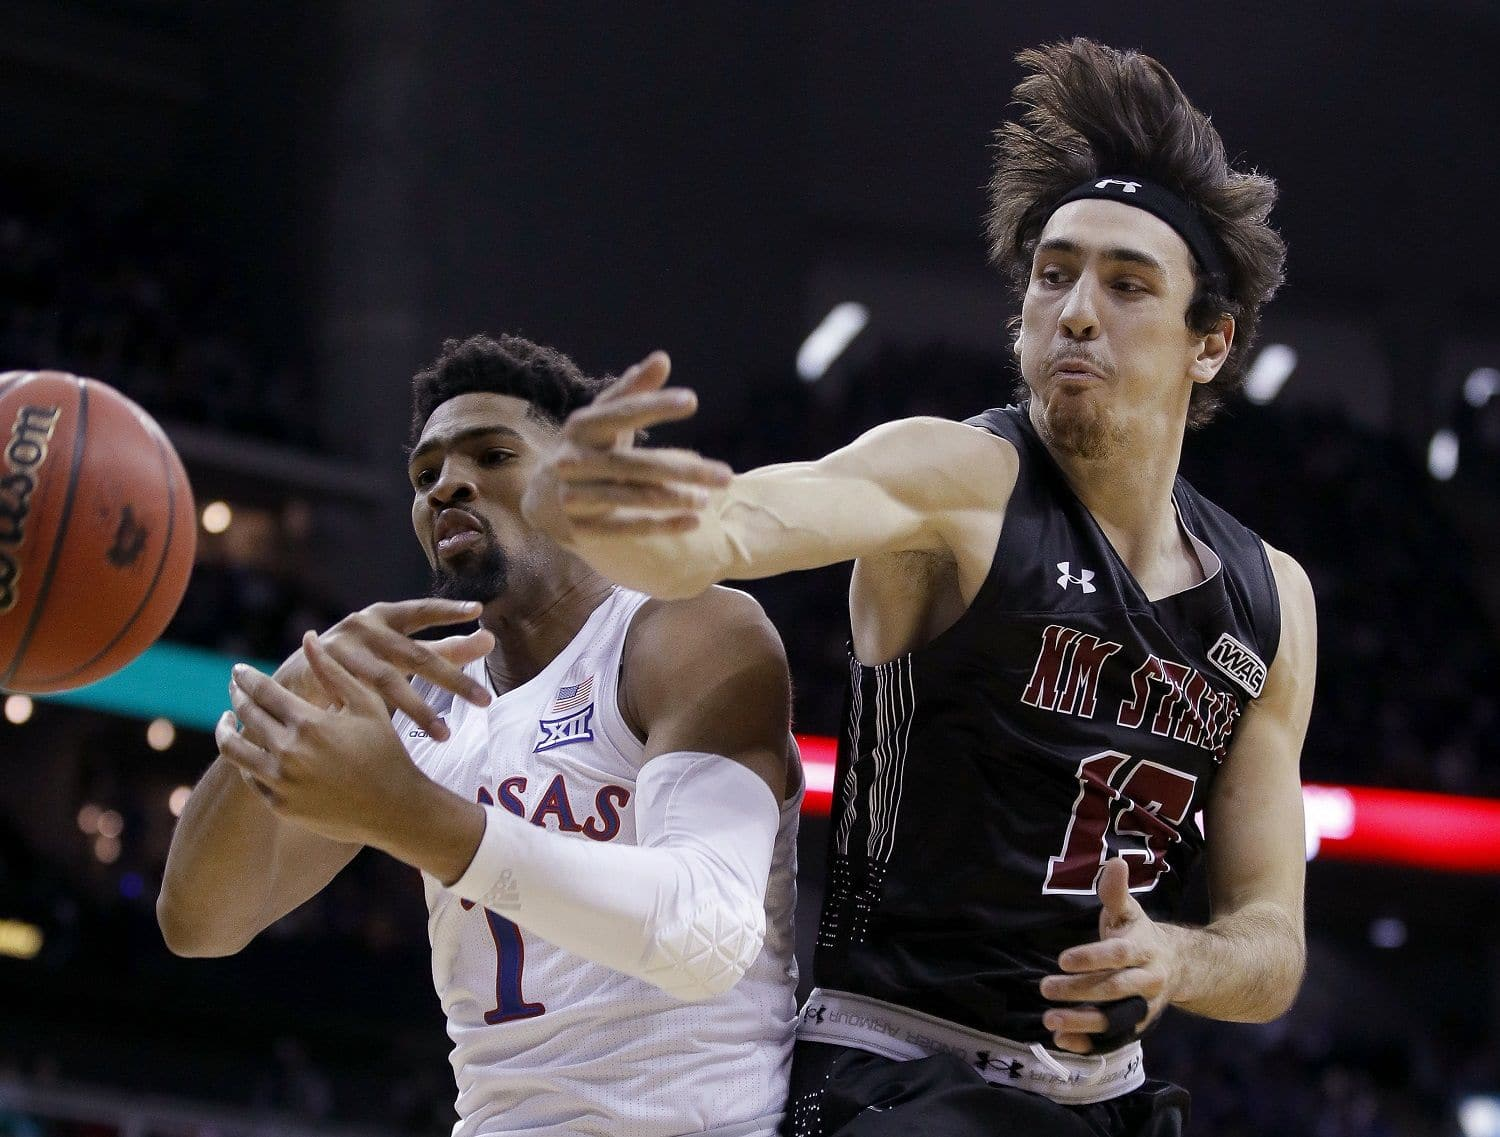 New Mexico State's Ivan Aurrecoechea, right, knocks the ball away from Kansas' Dedric Lawson (1) during the first half of an NCAA college basketball game Saturday, Dec. 8, 2018, in Kansas City, Mo. (AP Photo/Charlie Riedel)